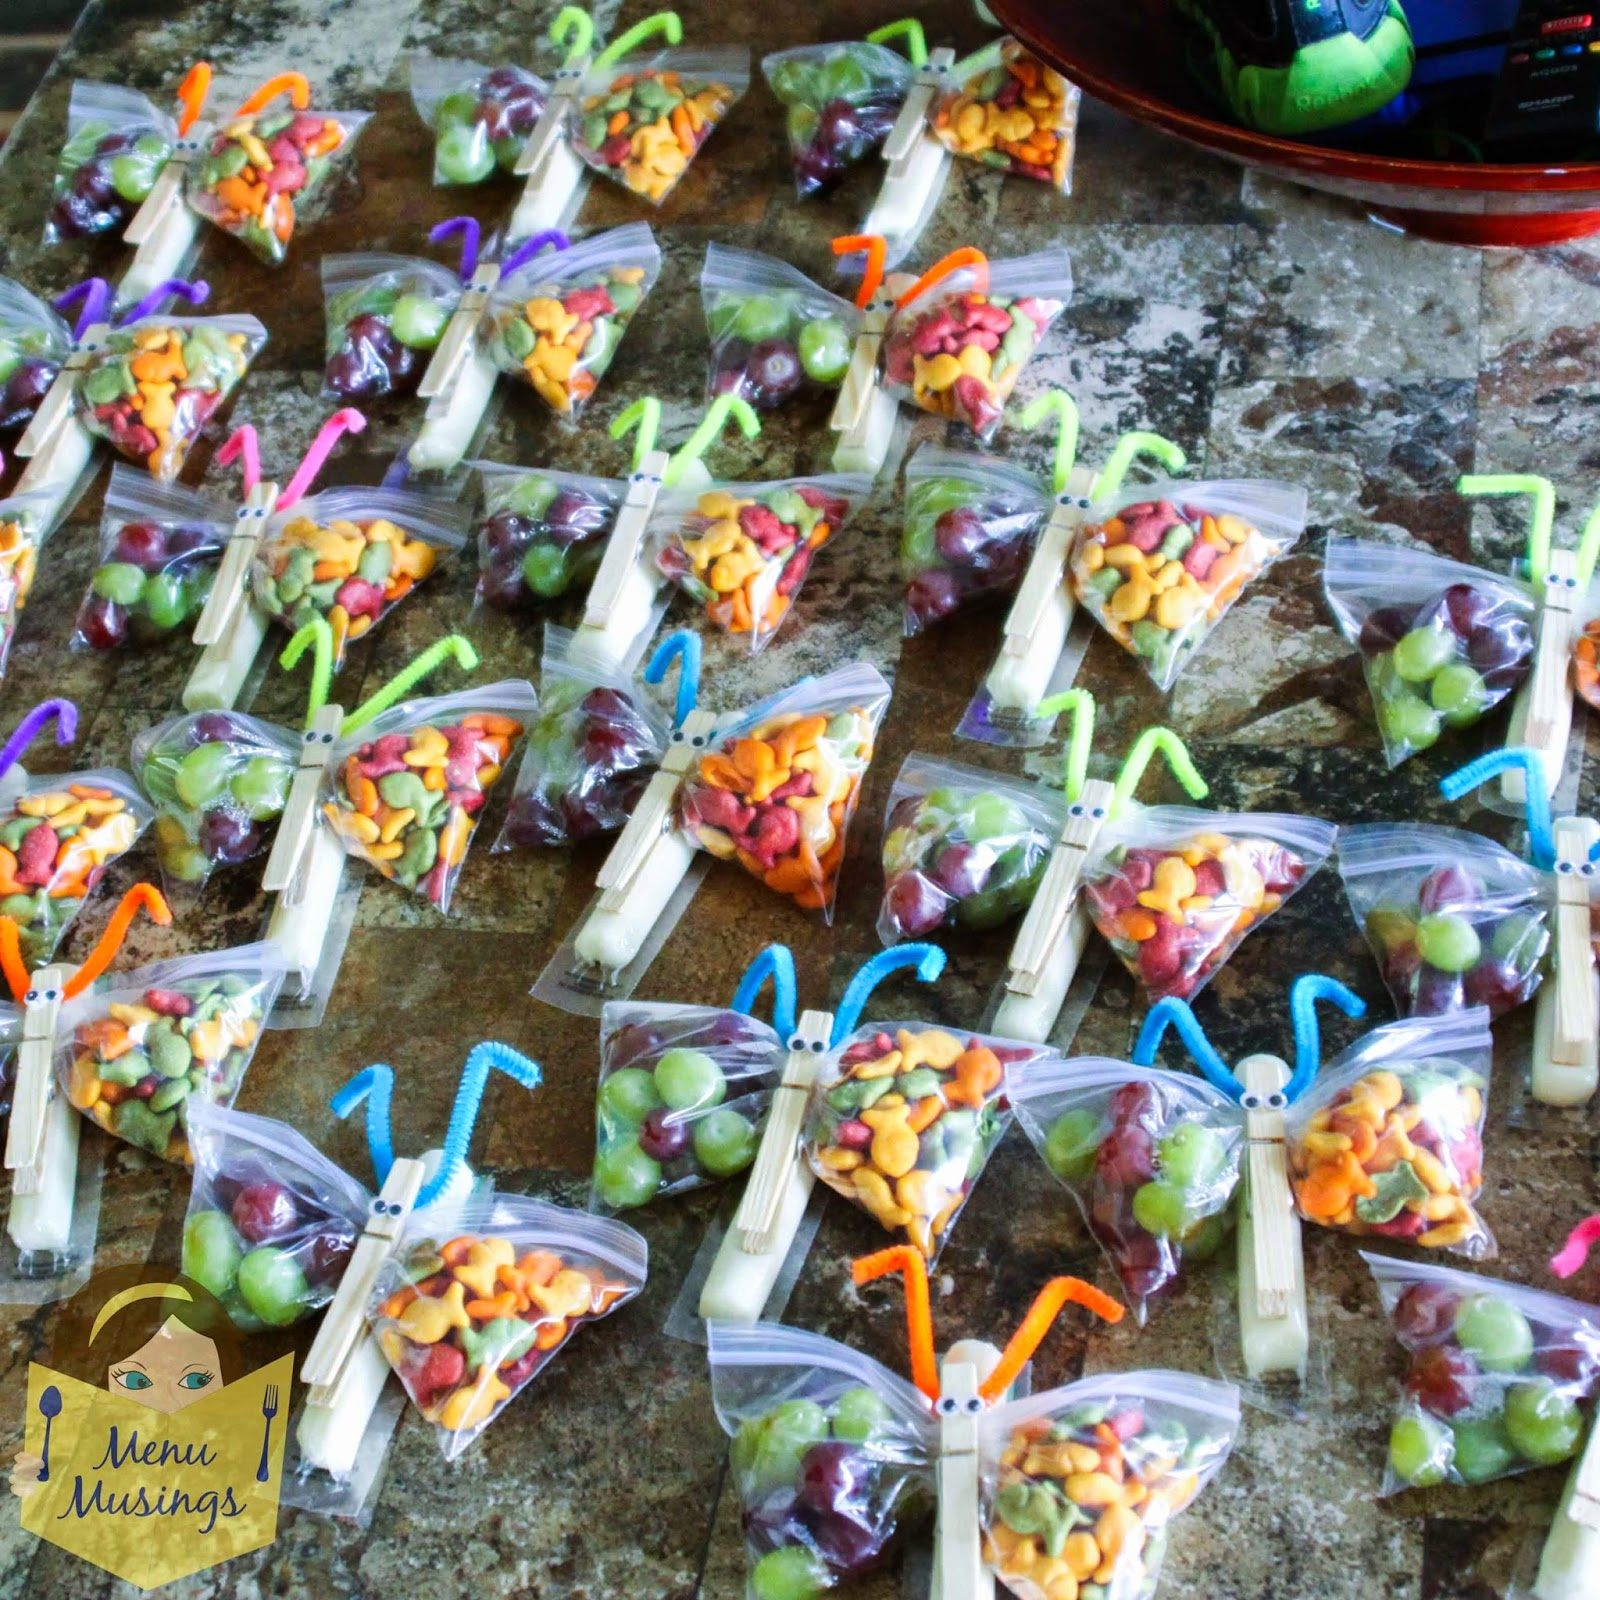 Classroom Cooking Ideas For Kindergarten ~ Menu musings of a modern american mom butterfly snack bags